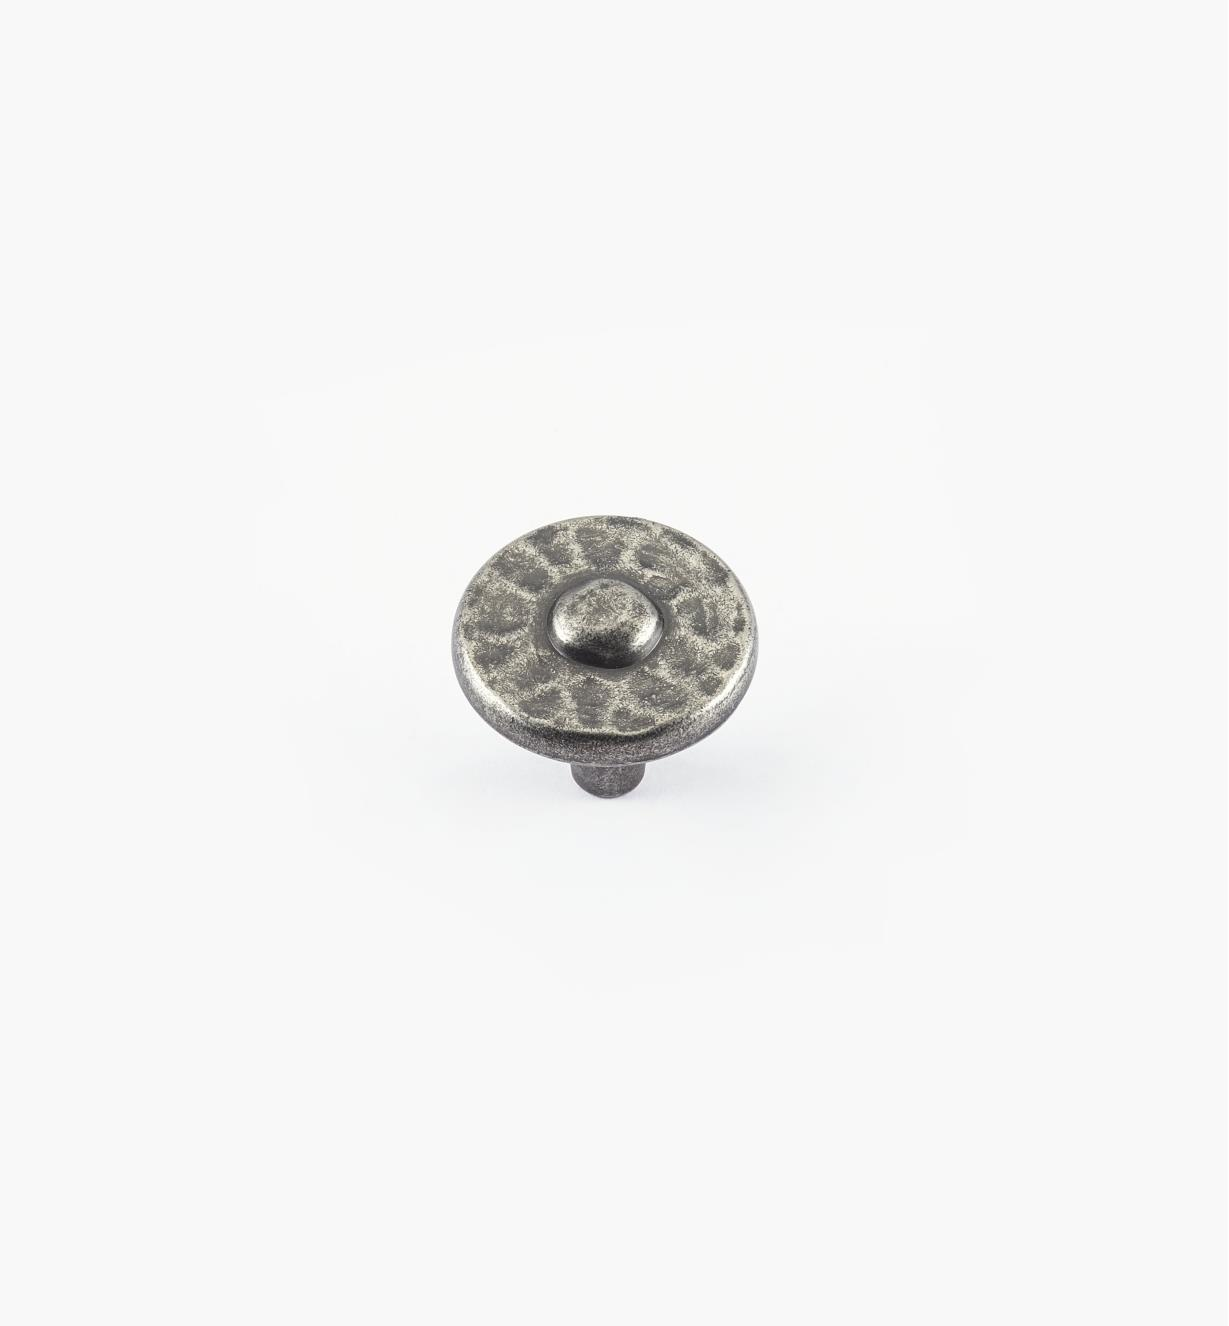 "01W4911 - 1 3/8"" Nevada Antique Pewter Knob"